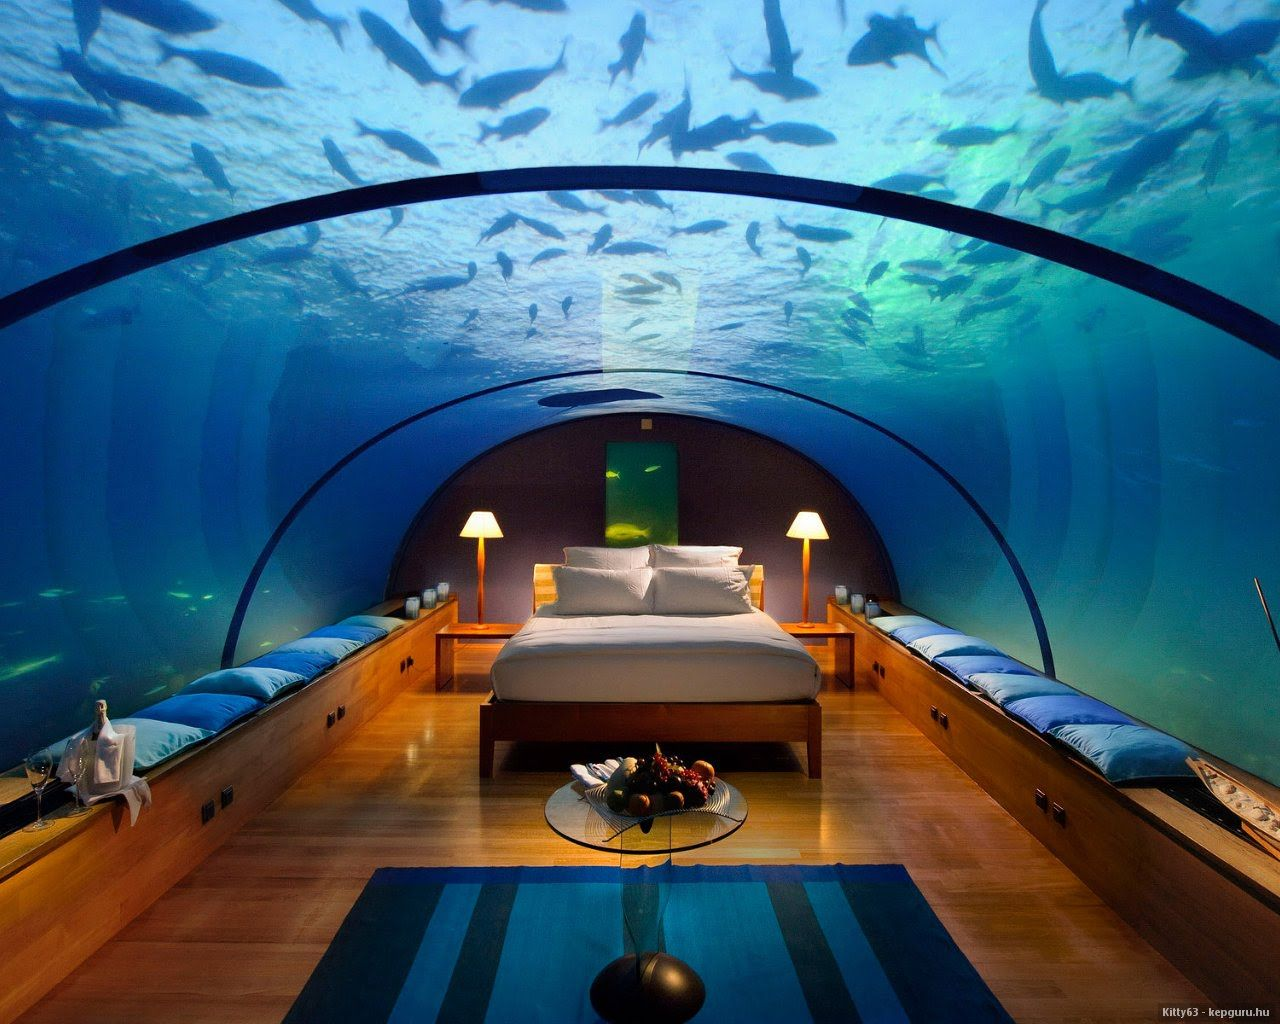 Fish aquarium bed frame - Fish Tank Bedroom Dwight Designs